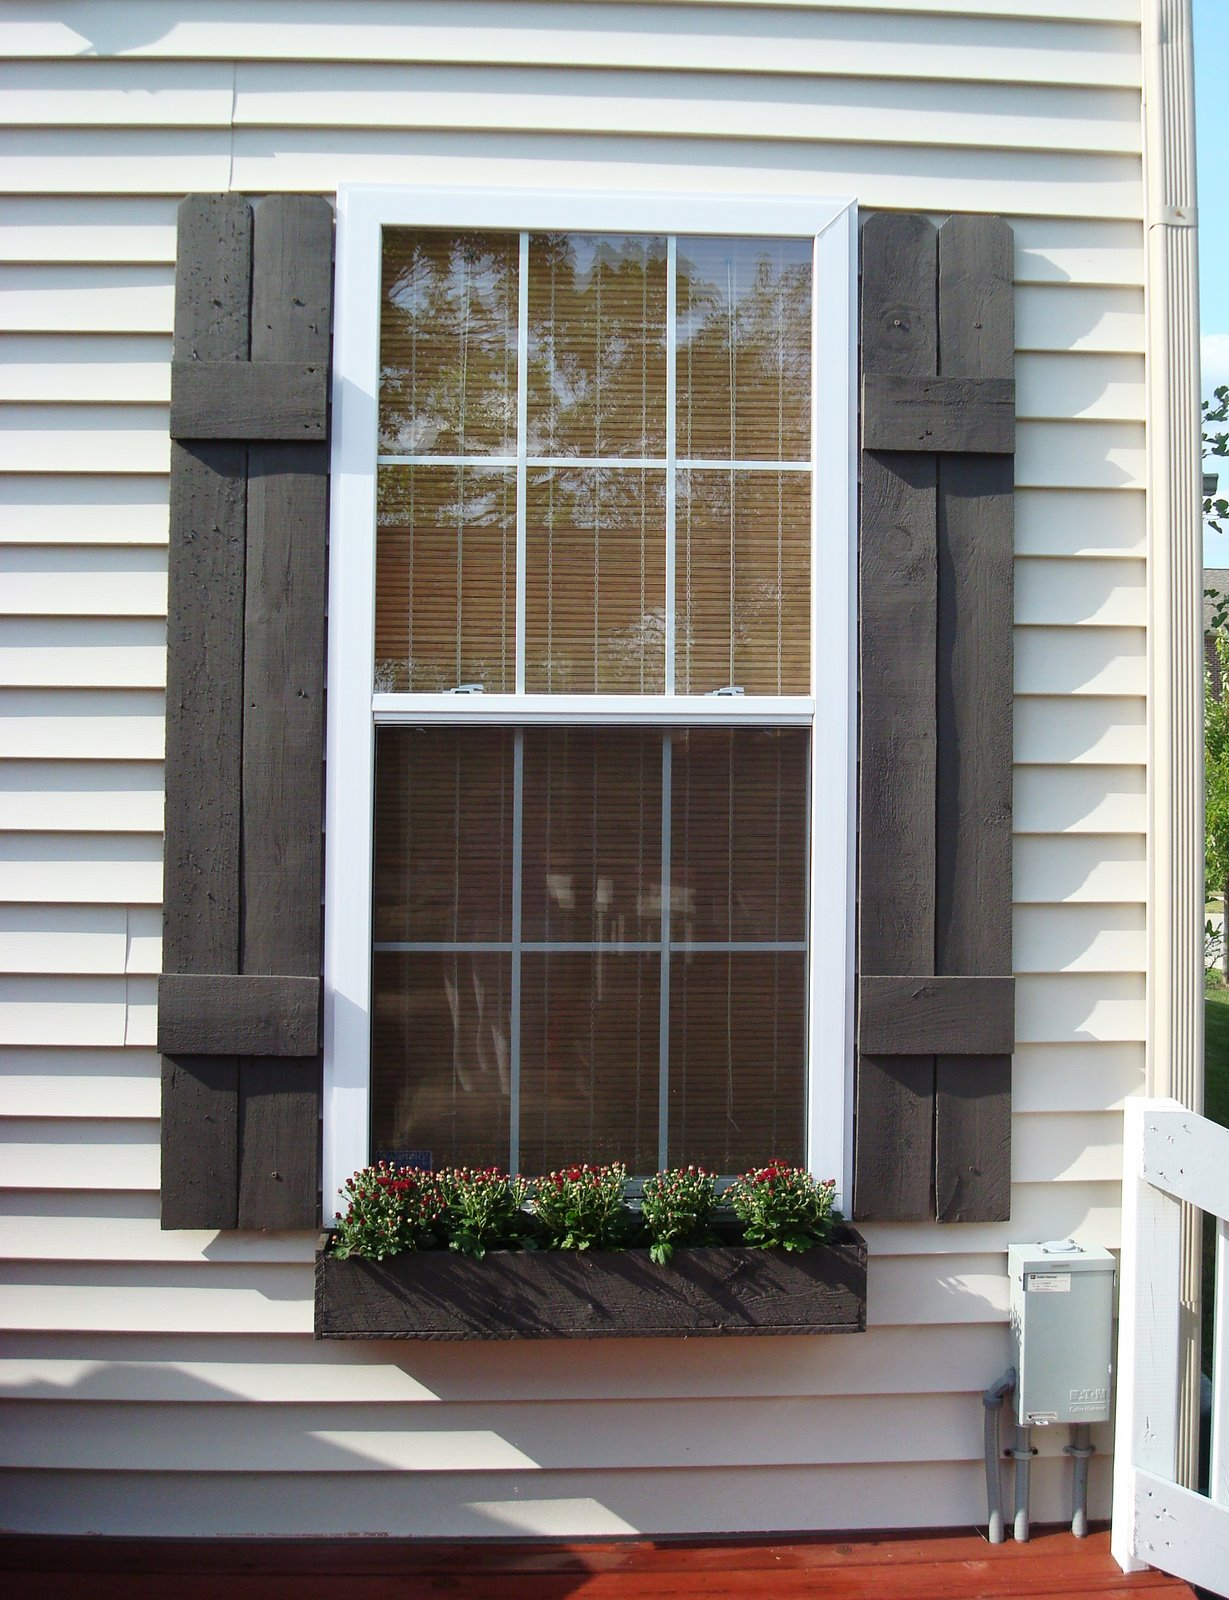 Exterior shutters how to build shutters and window boxes thrifty decor chick